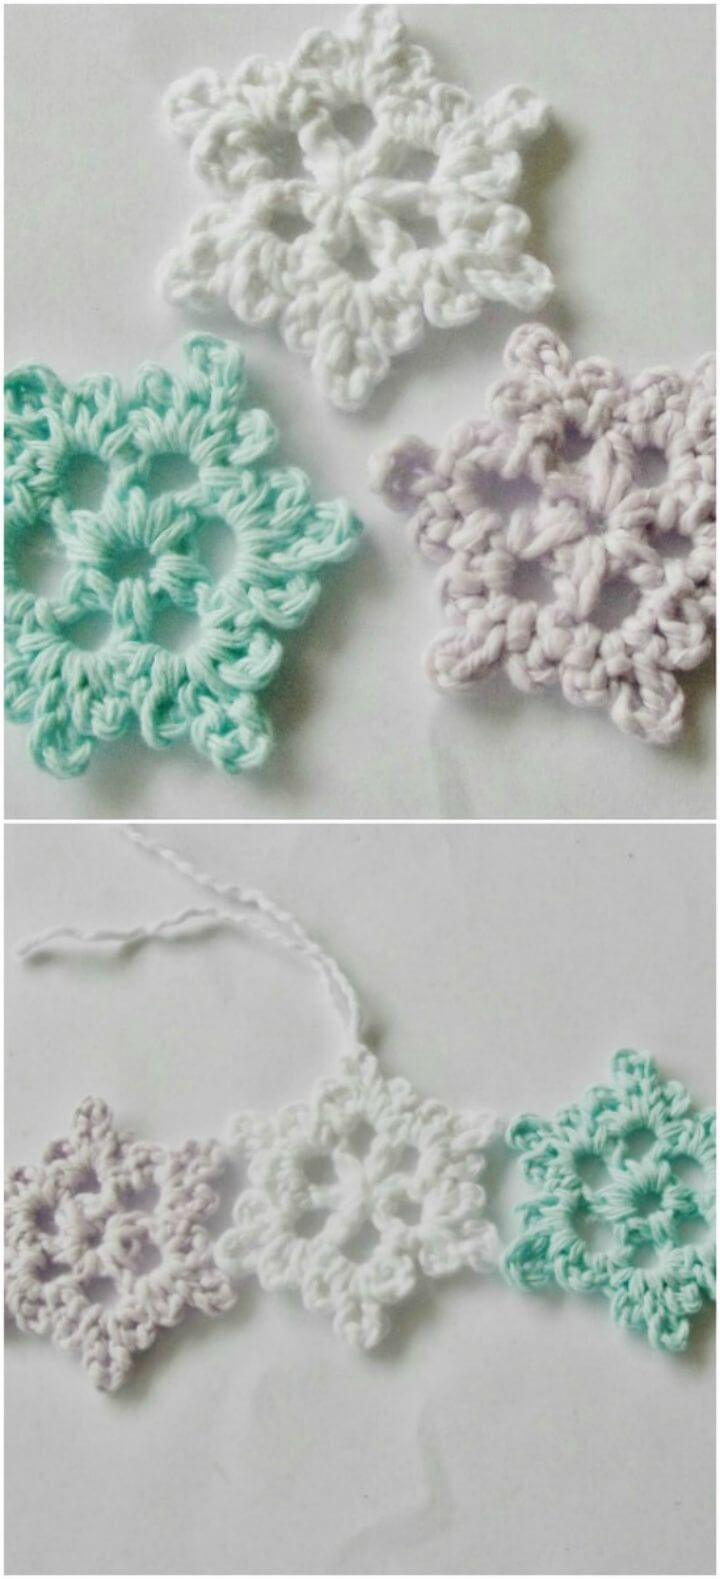 101 Free Crochet Patterns For Beginners That Are Super Easy | Pinterest